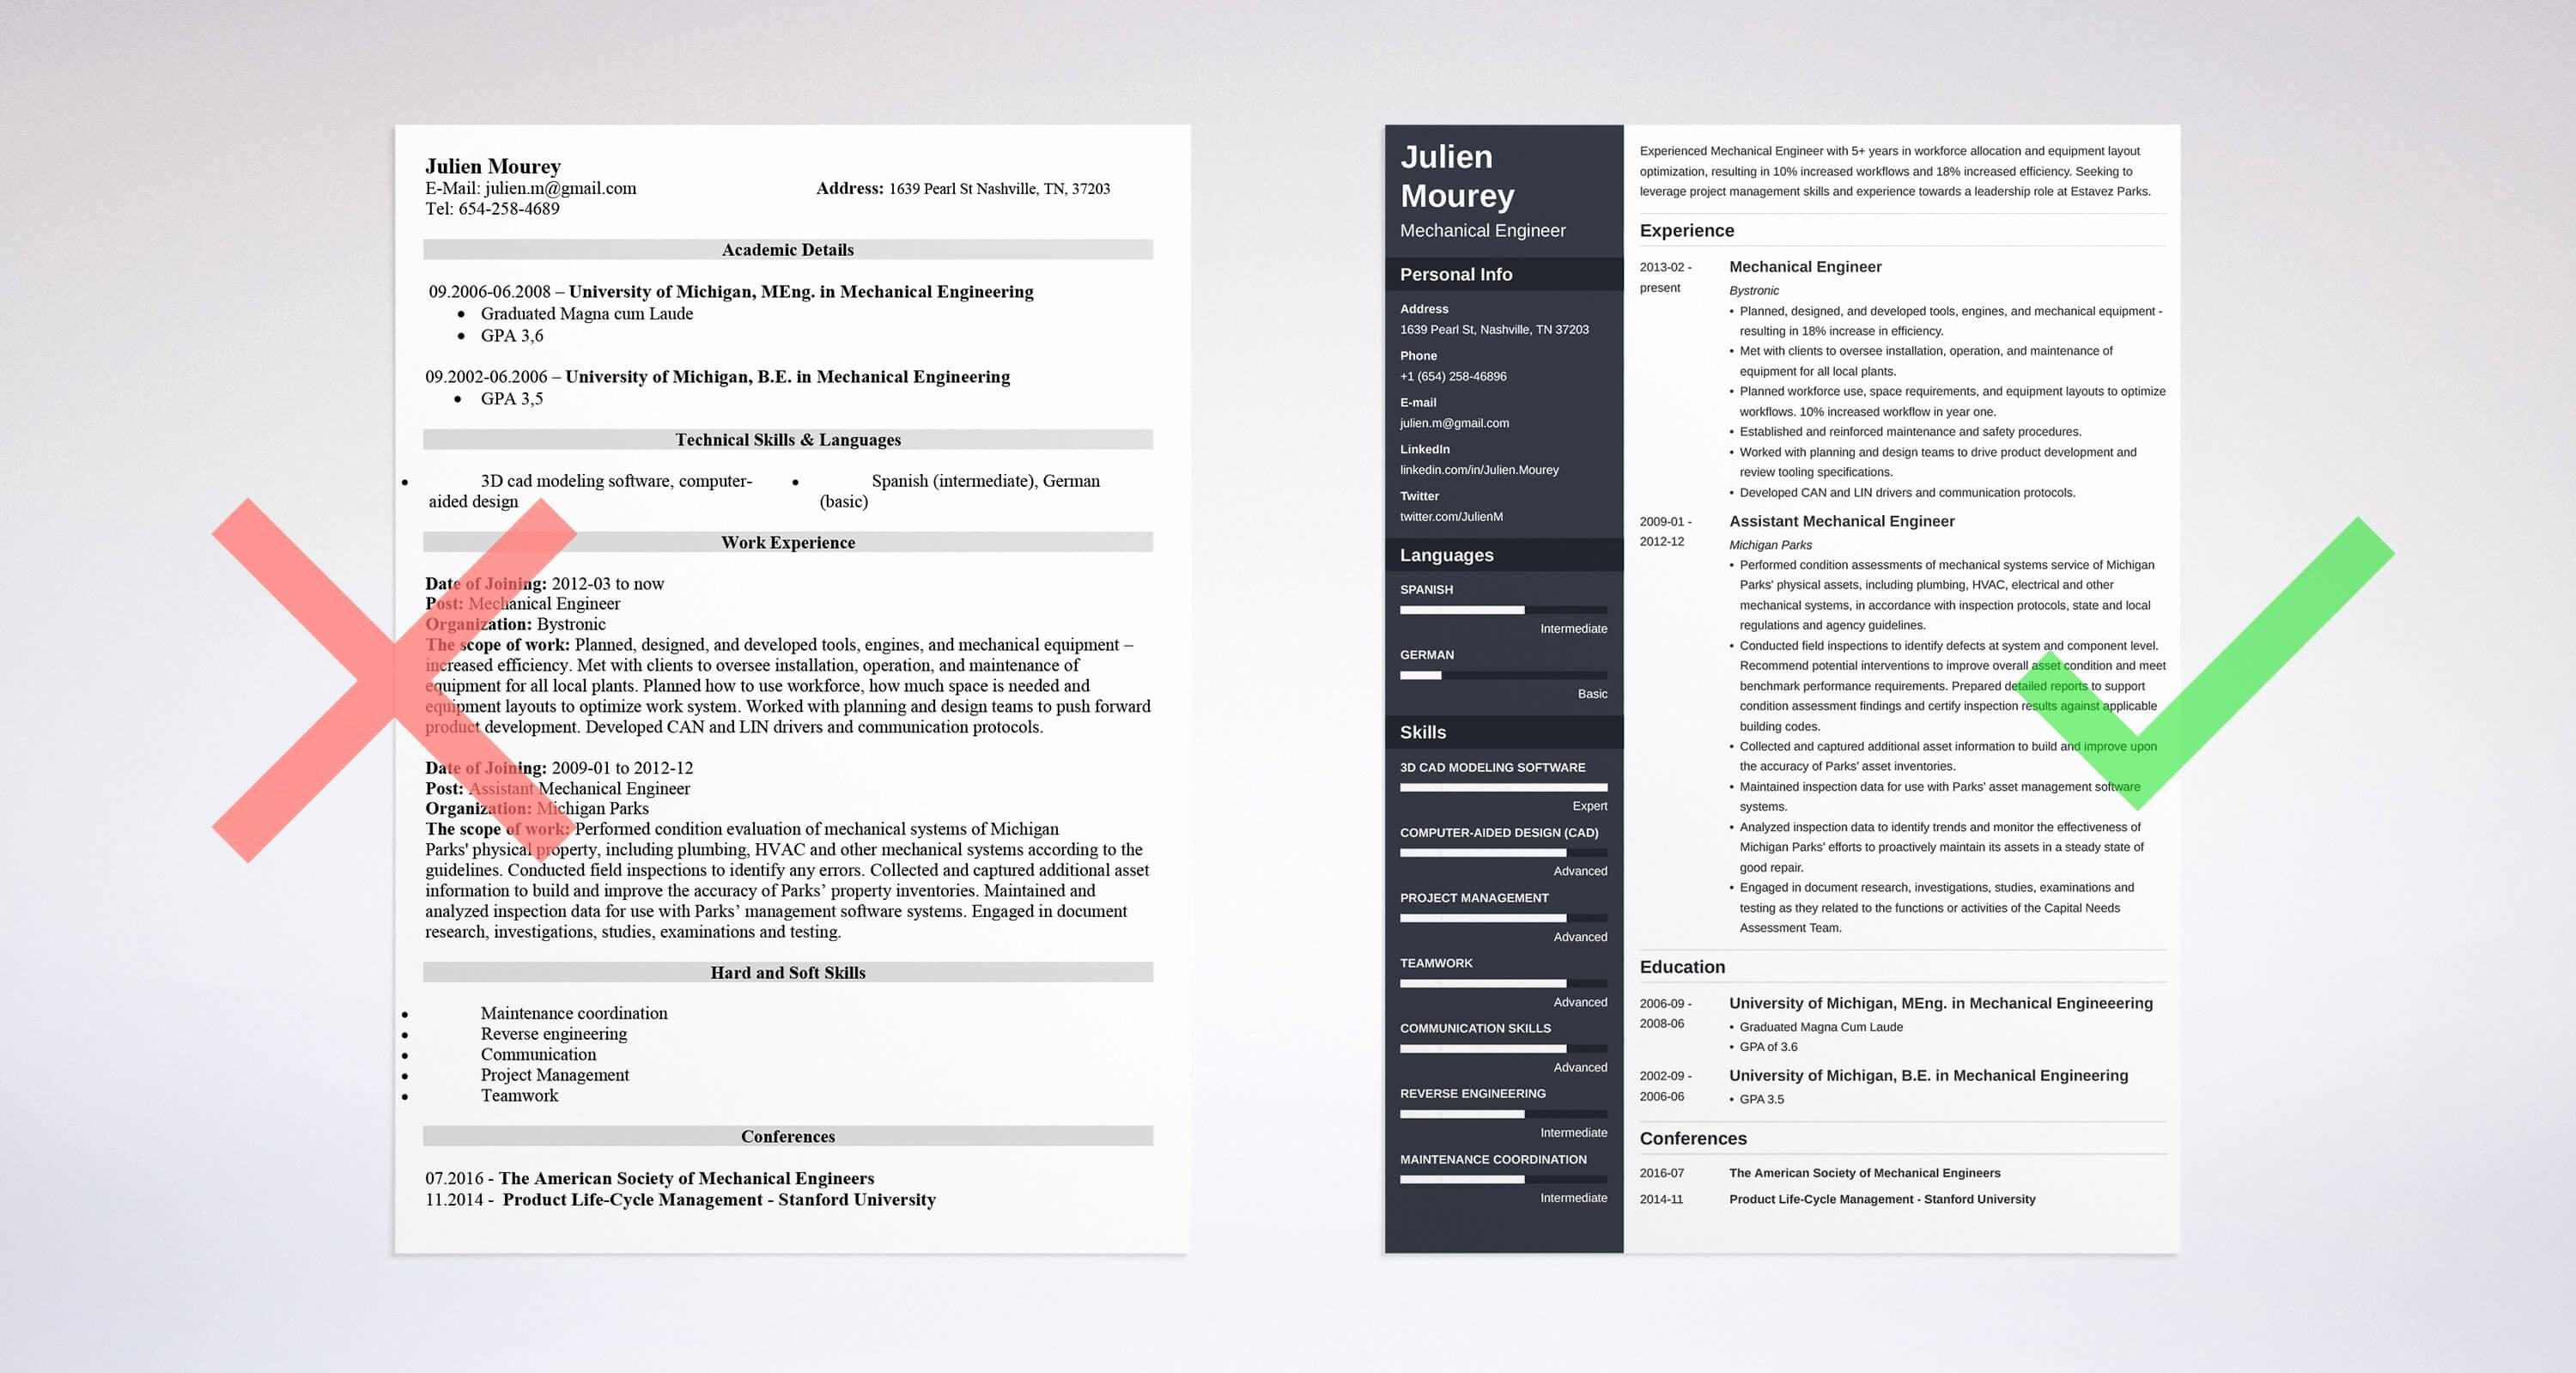 Mechanical Engineering Resume Examples Fresh Mechanical Engineering Resume Sample & Guide [20 Examples]